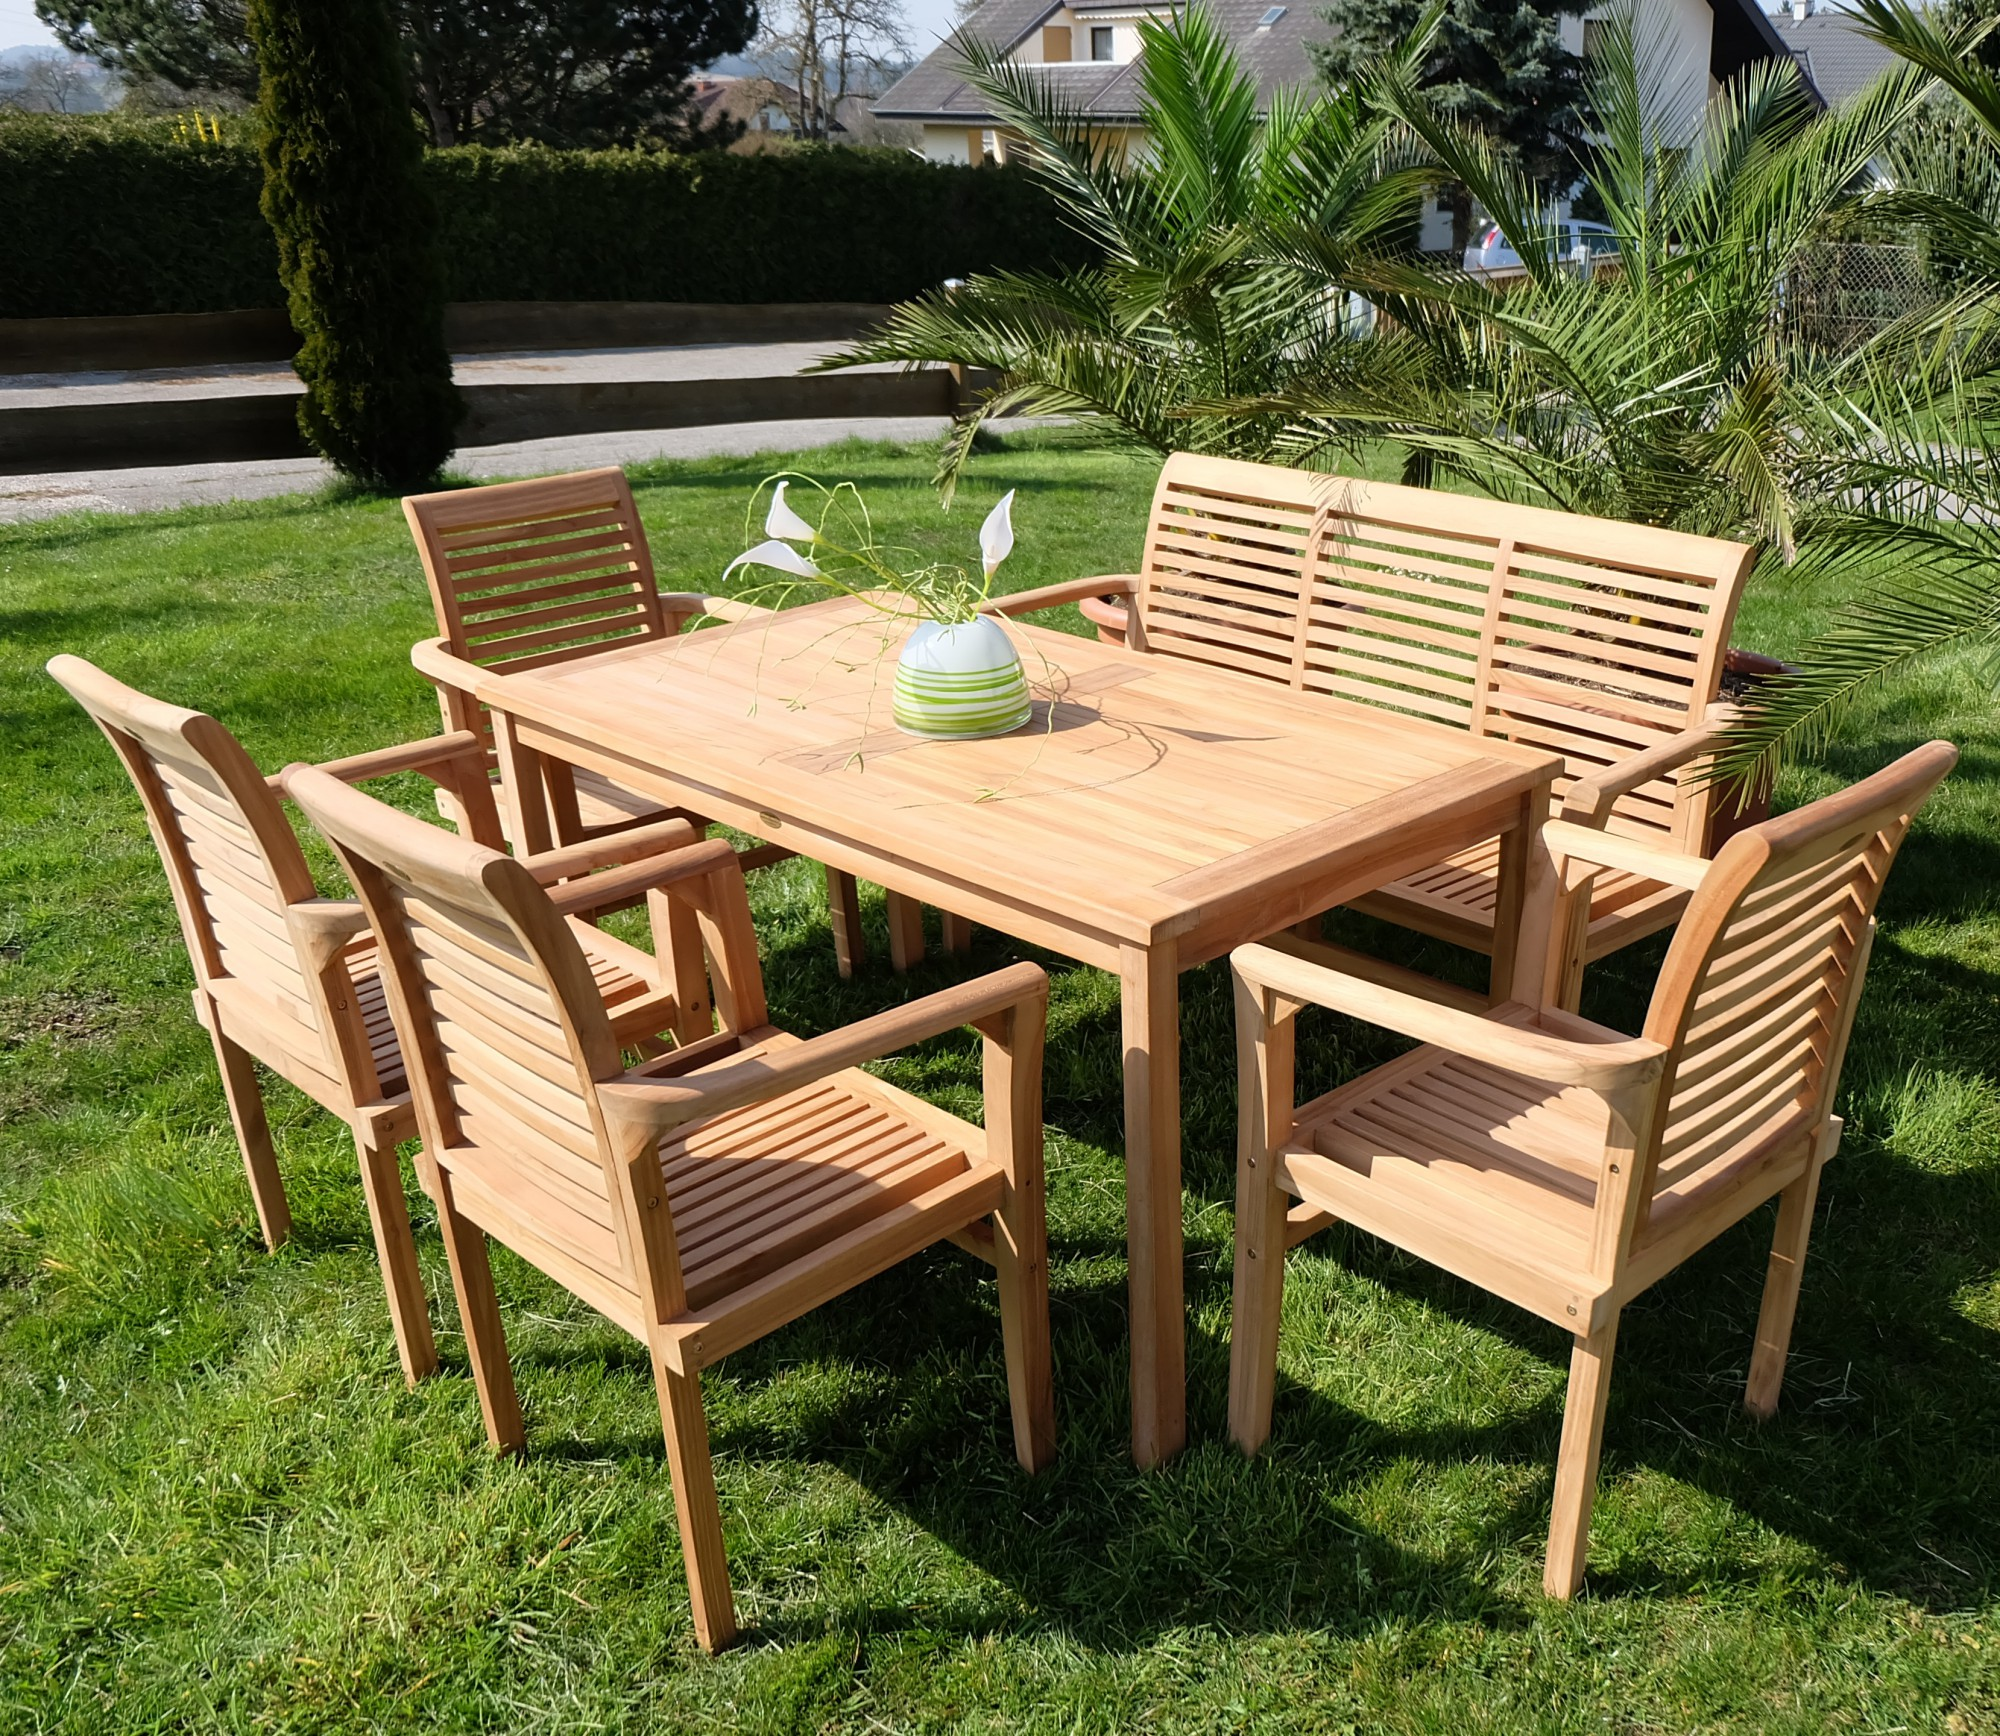 teak xxl set gartentisch 1 bank 4 sessel alpen alles f r garten und terasse gartenm bel. Black Bedroom Furniture Sets. Home Design Ideas